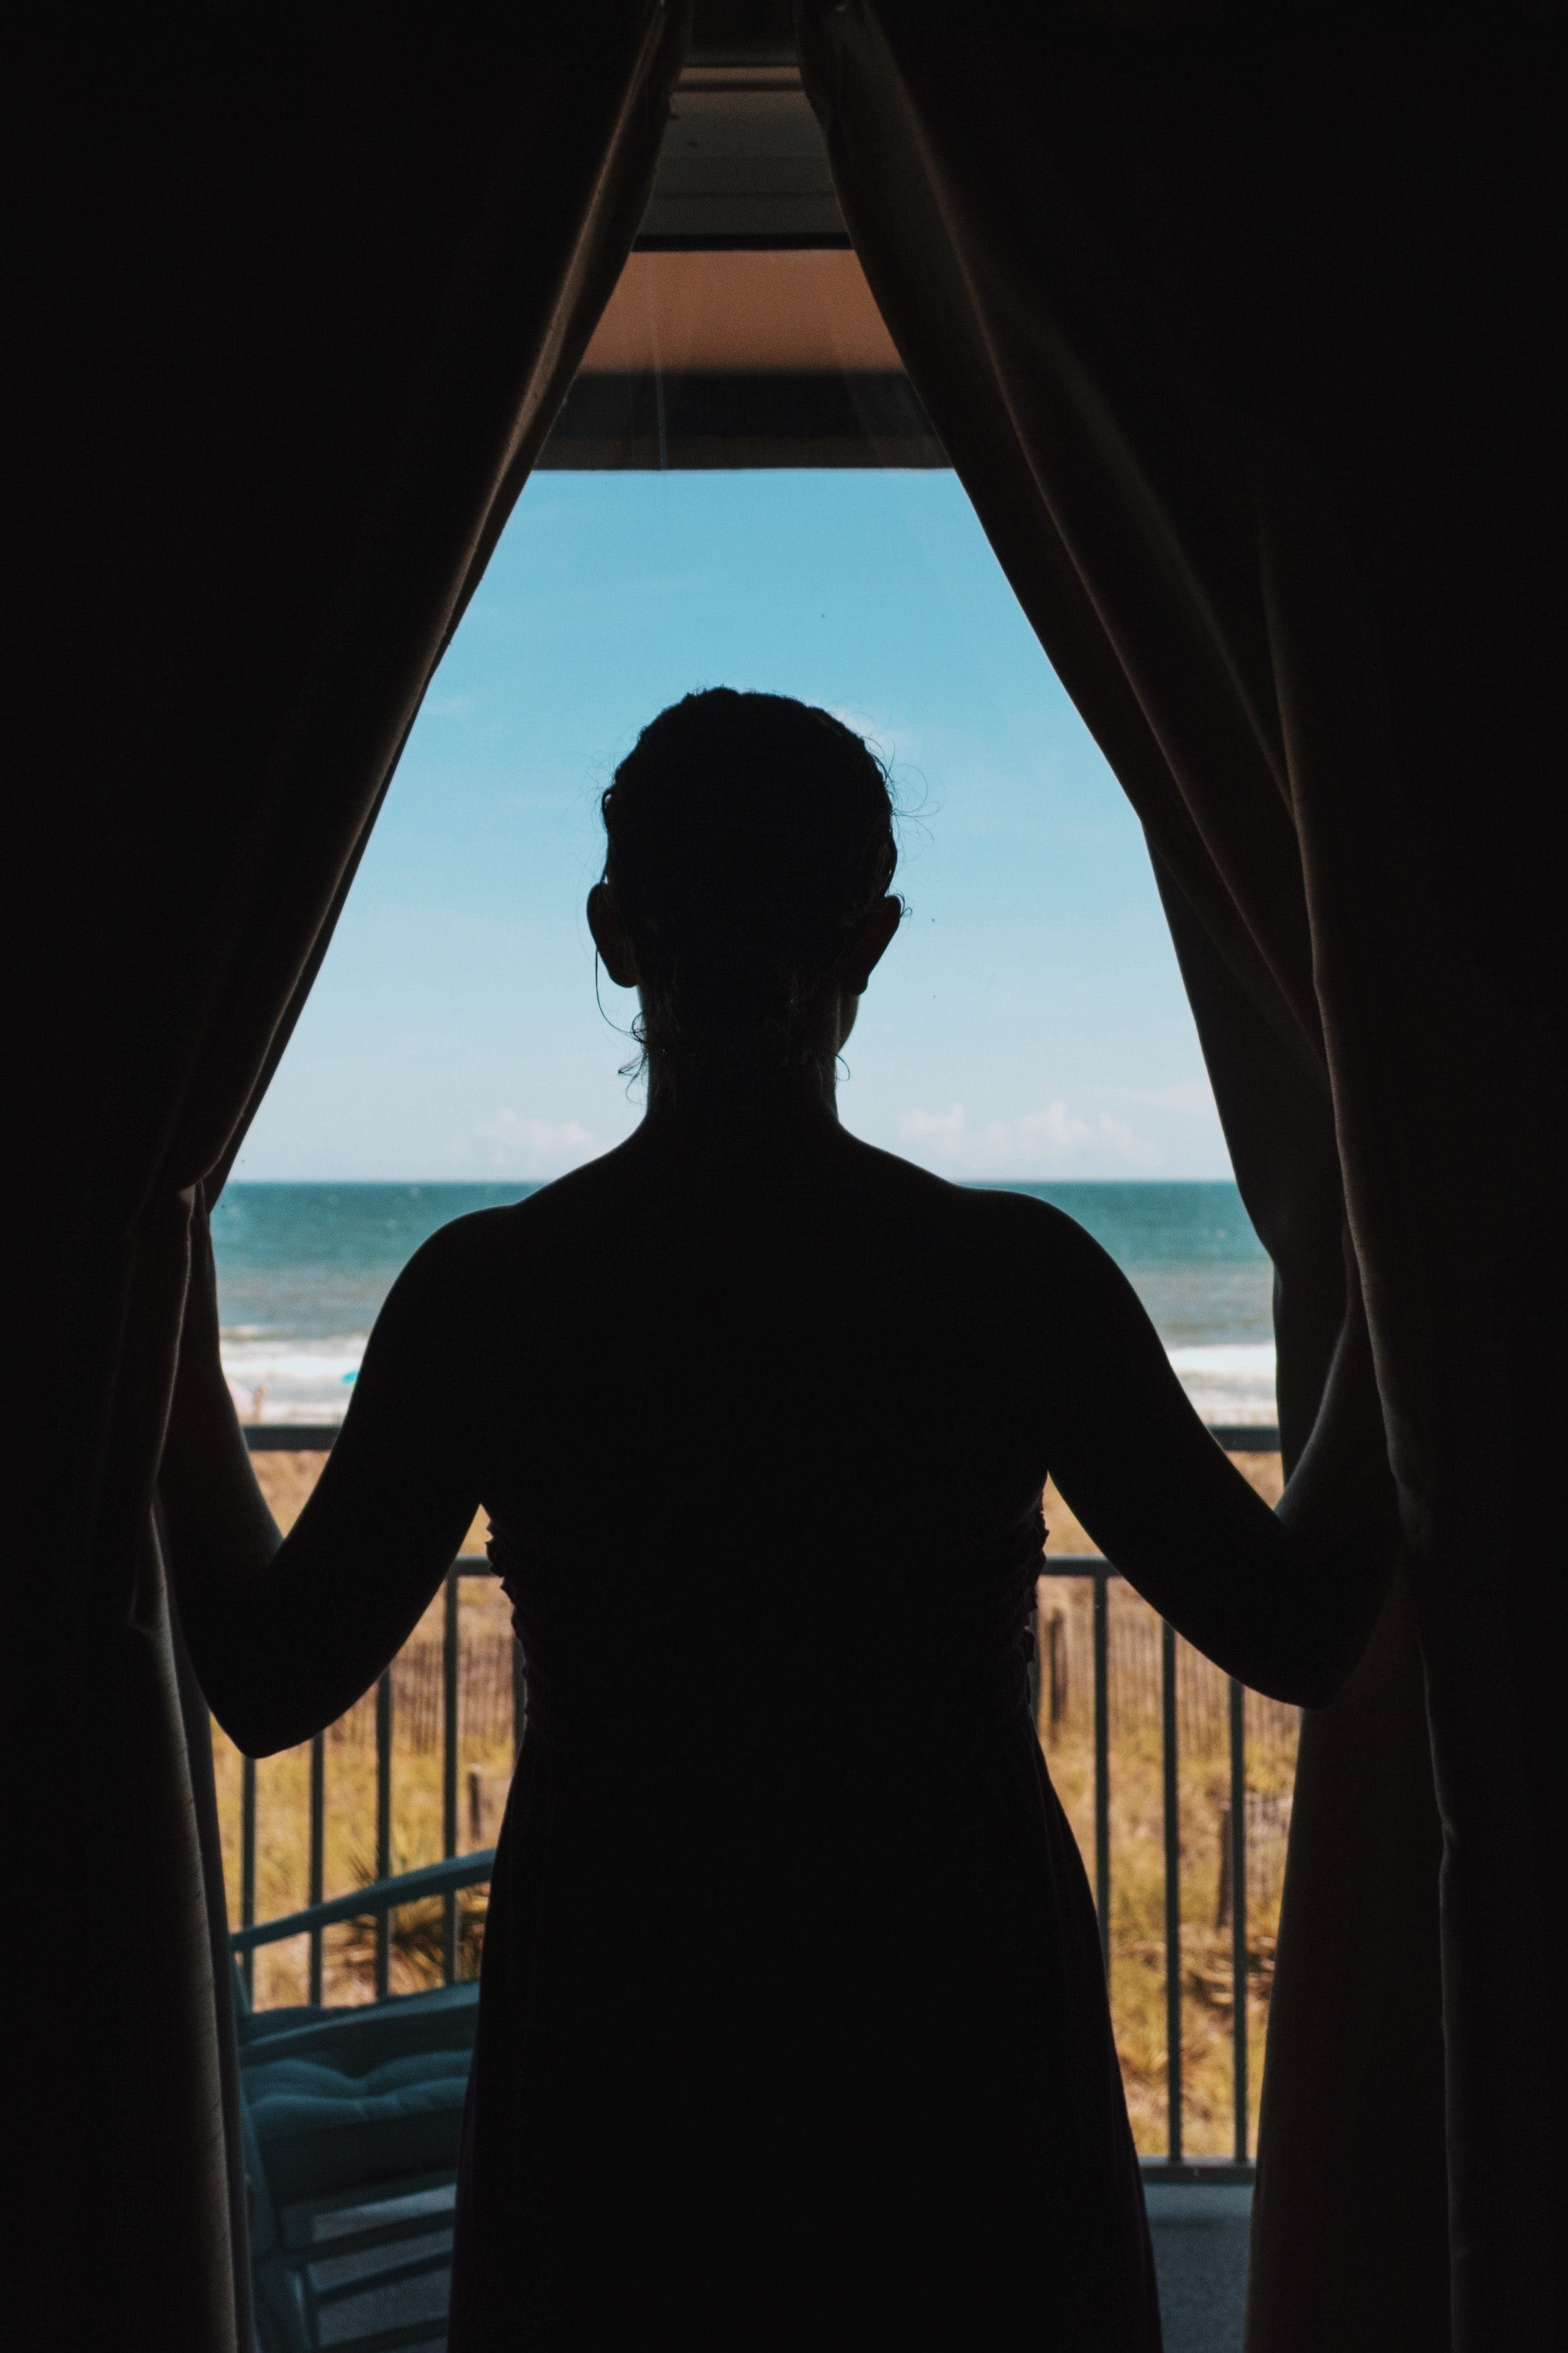 Silhouette of the person looking through balcony curtains on the Ocean Isle Beach coast